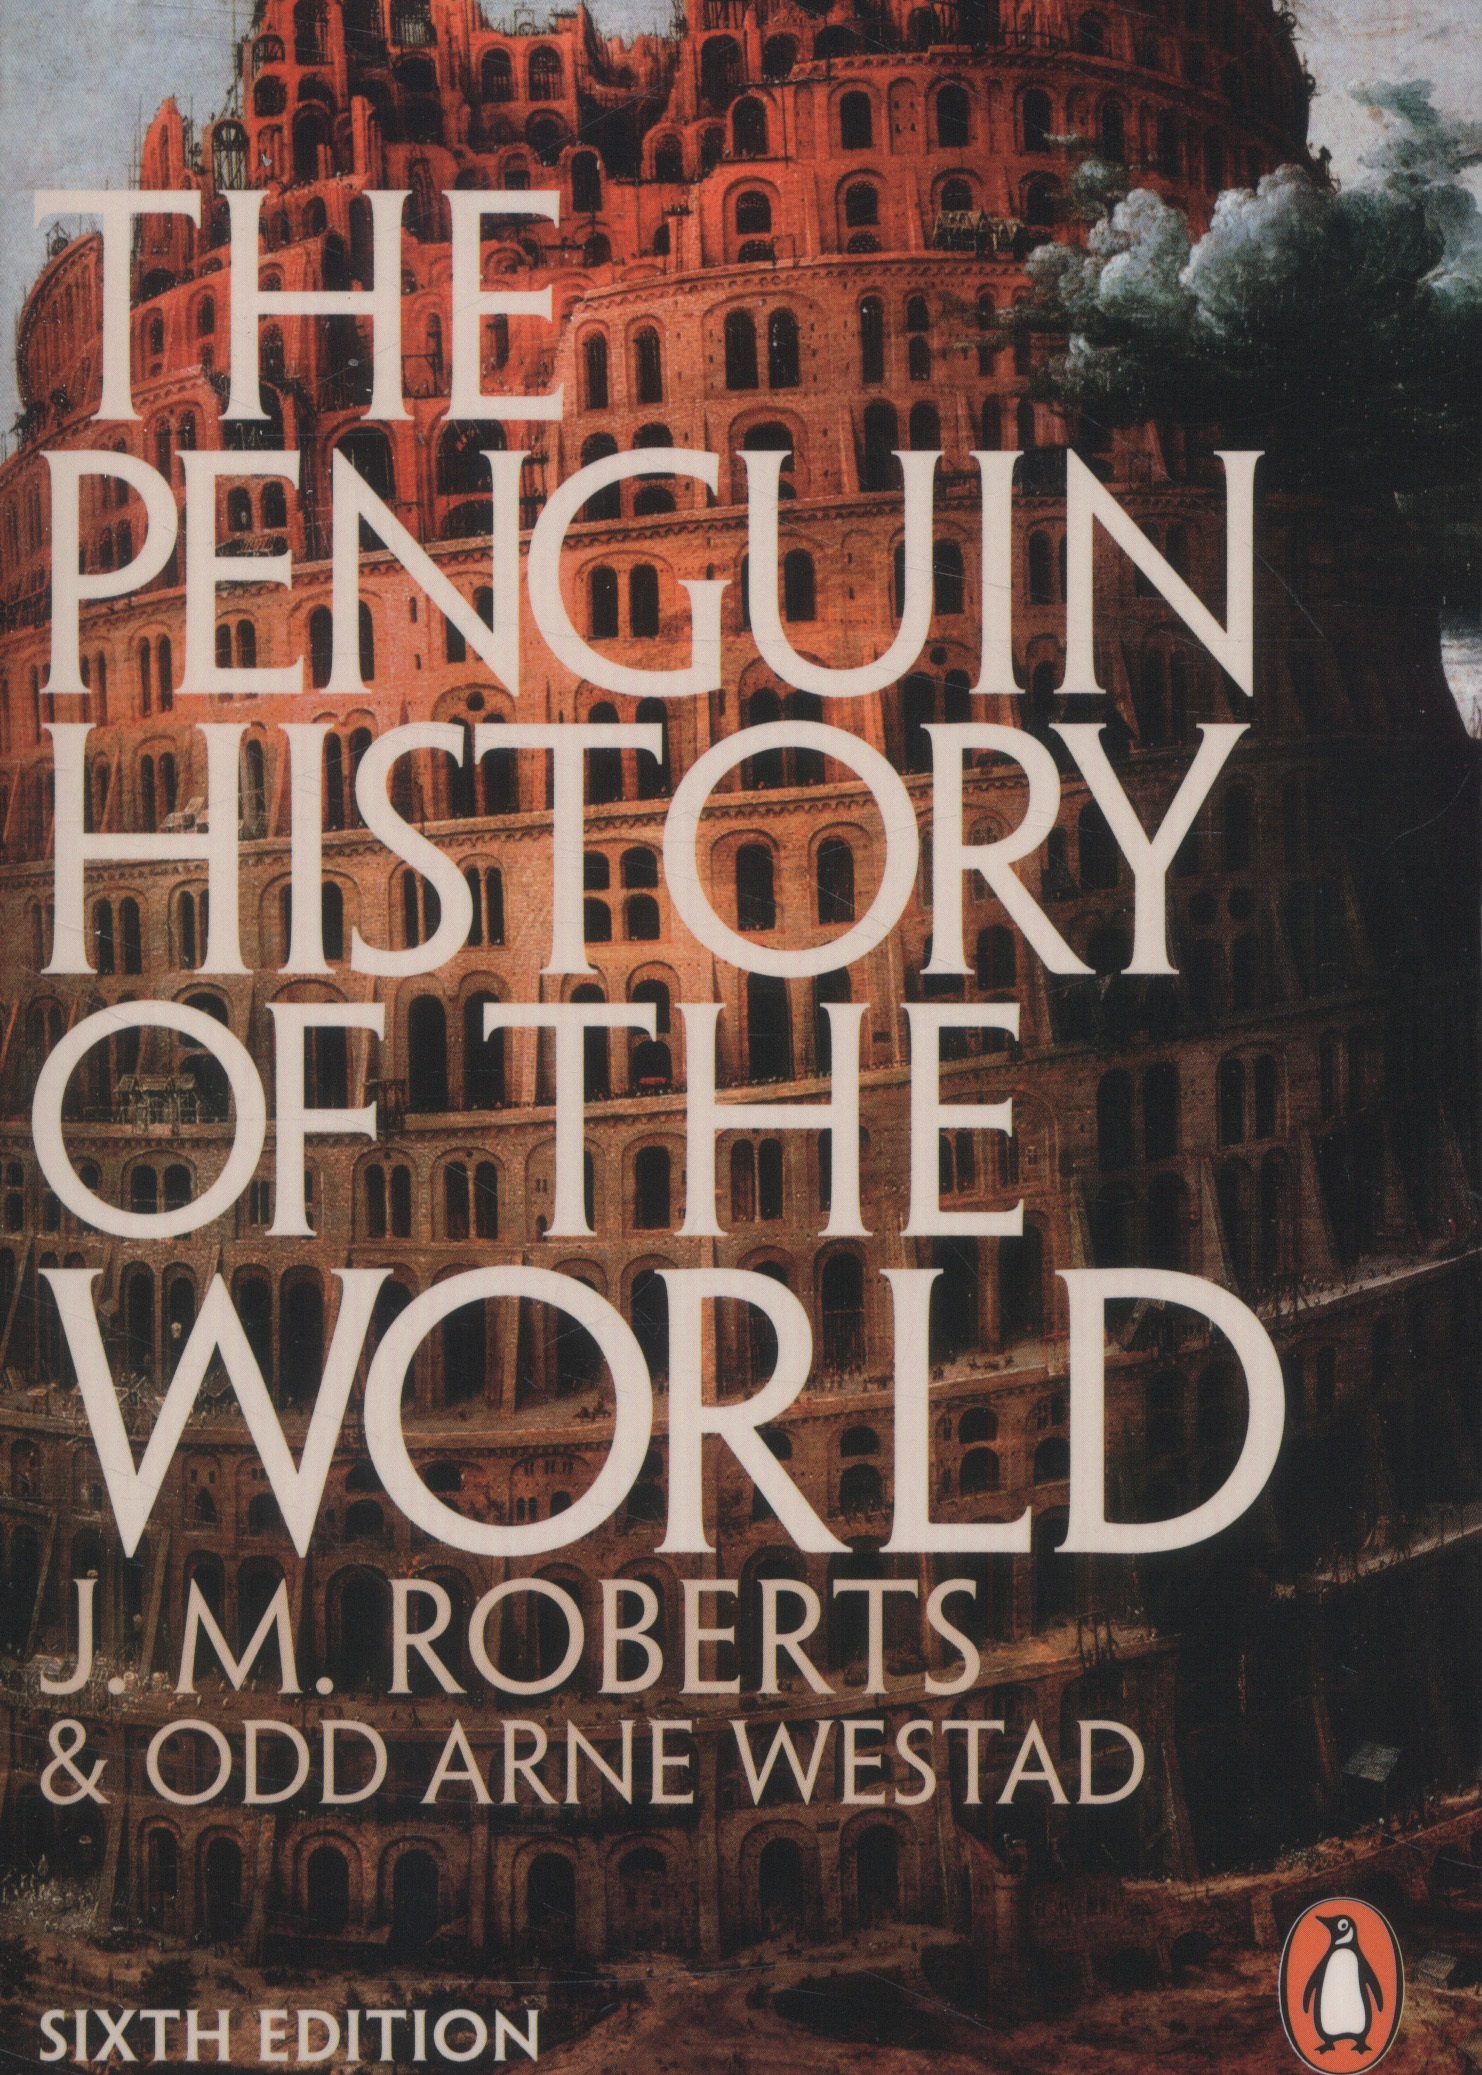 Roberts & Westad - The Penguin History of the World.jpg